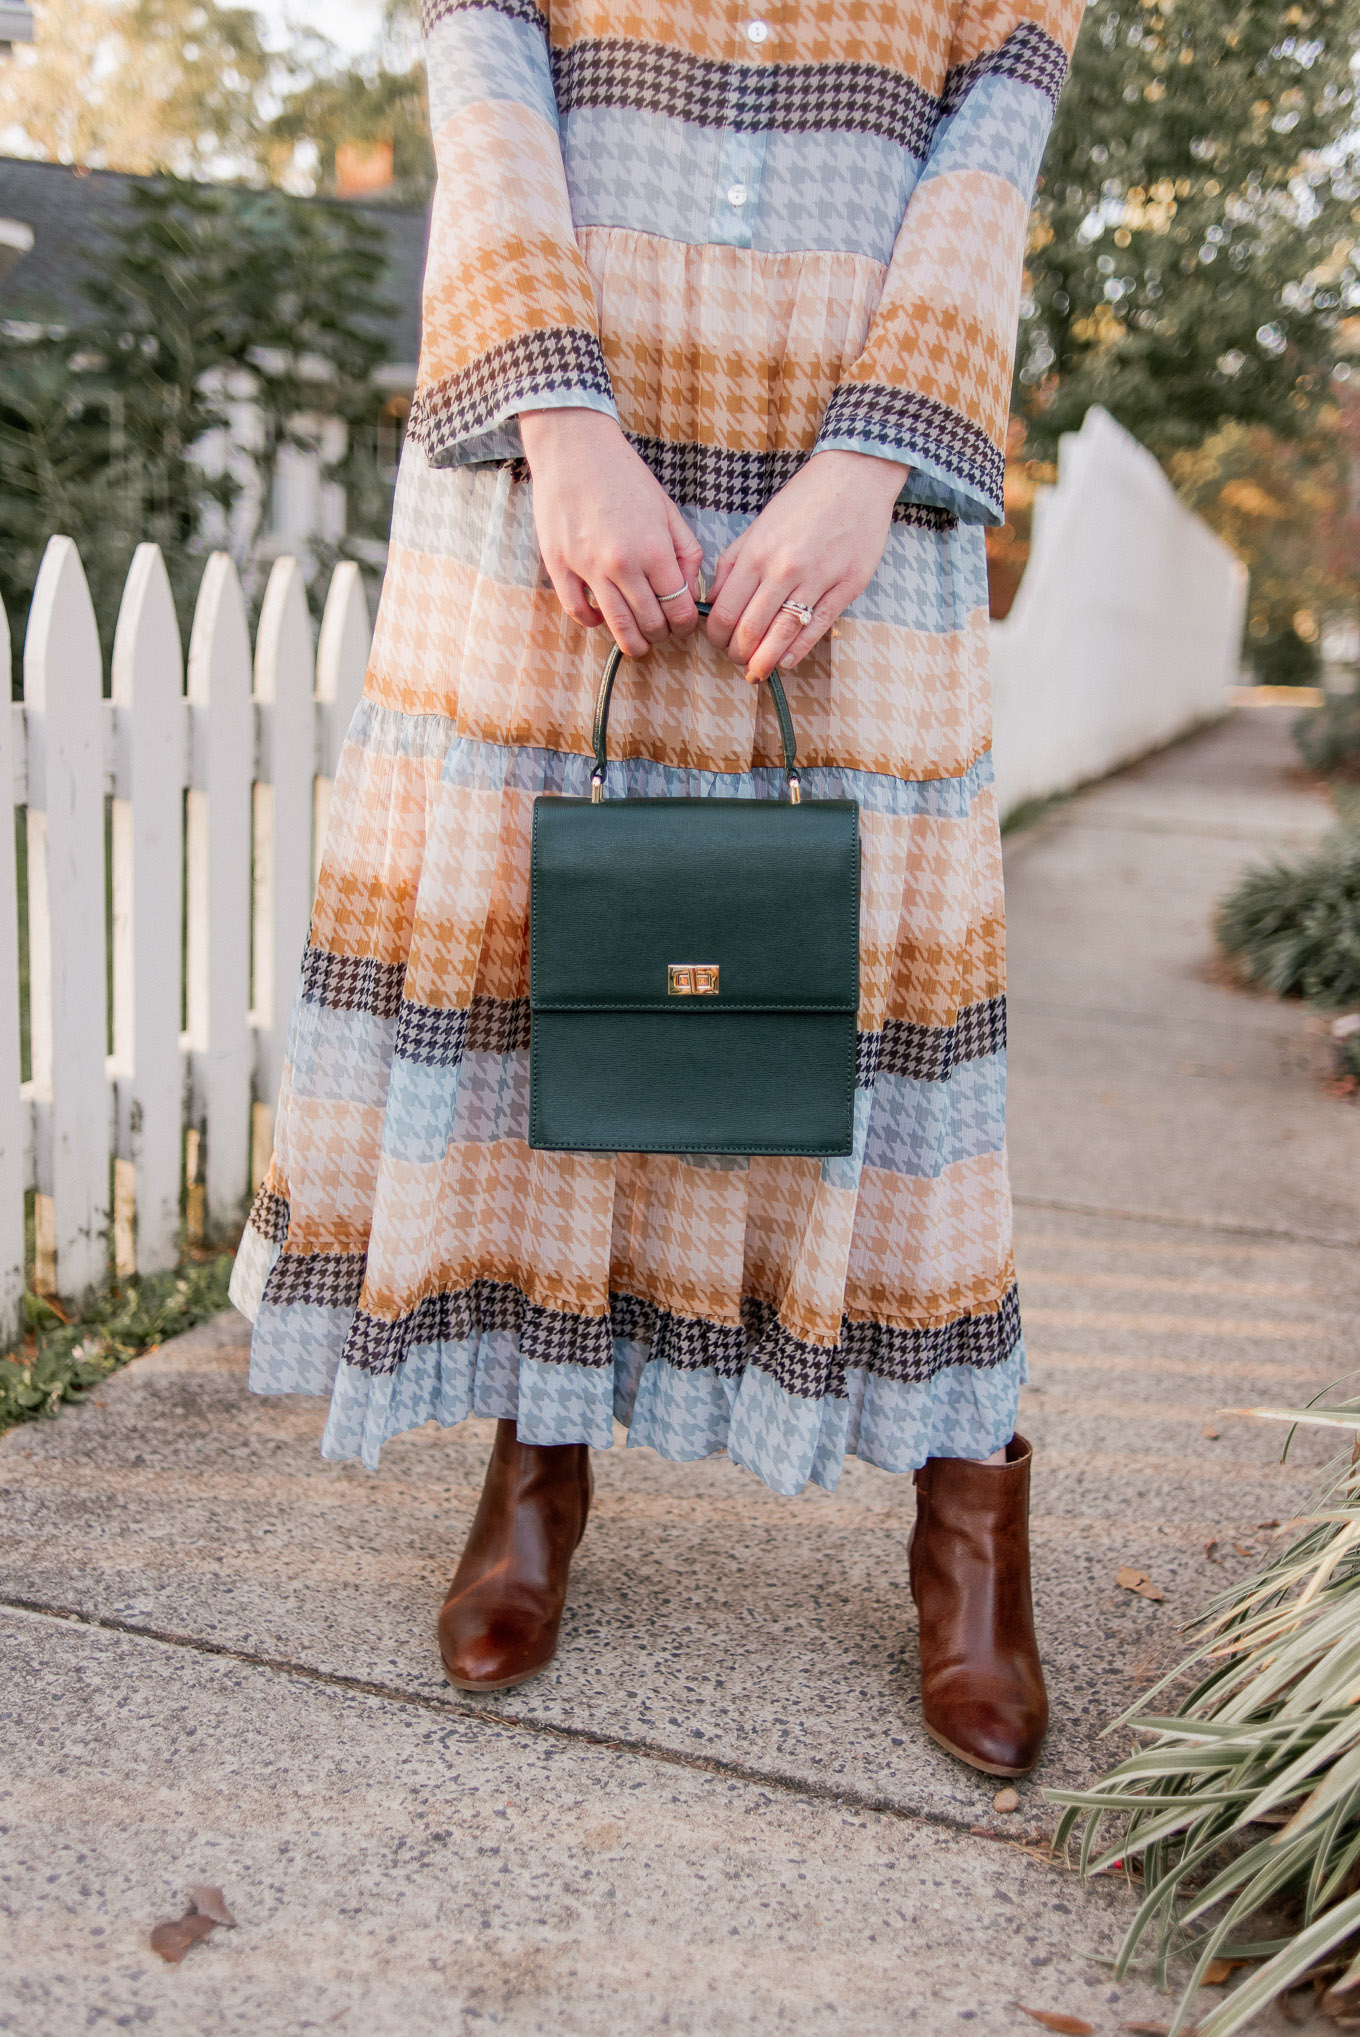 Tips on Creating a Capsule Wardrobe | Plaid Midi Dress, Fall Midi Dress, Fall Dress, Green Top Handle Bag, Brown Leather Booties | Louella Reese